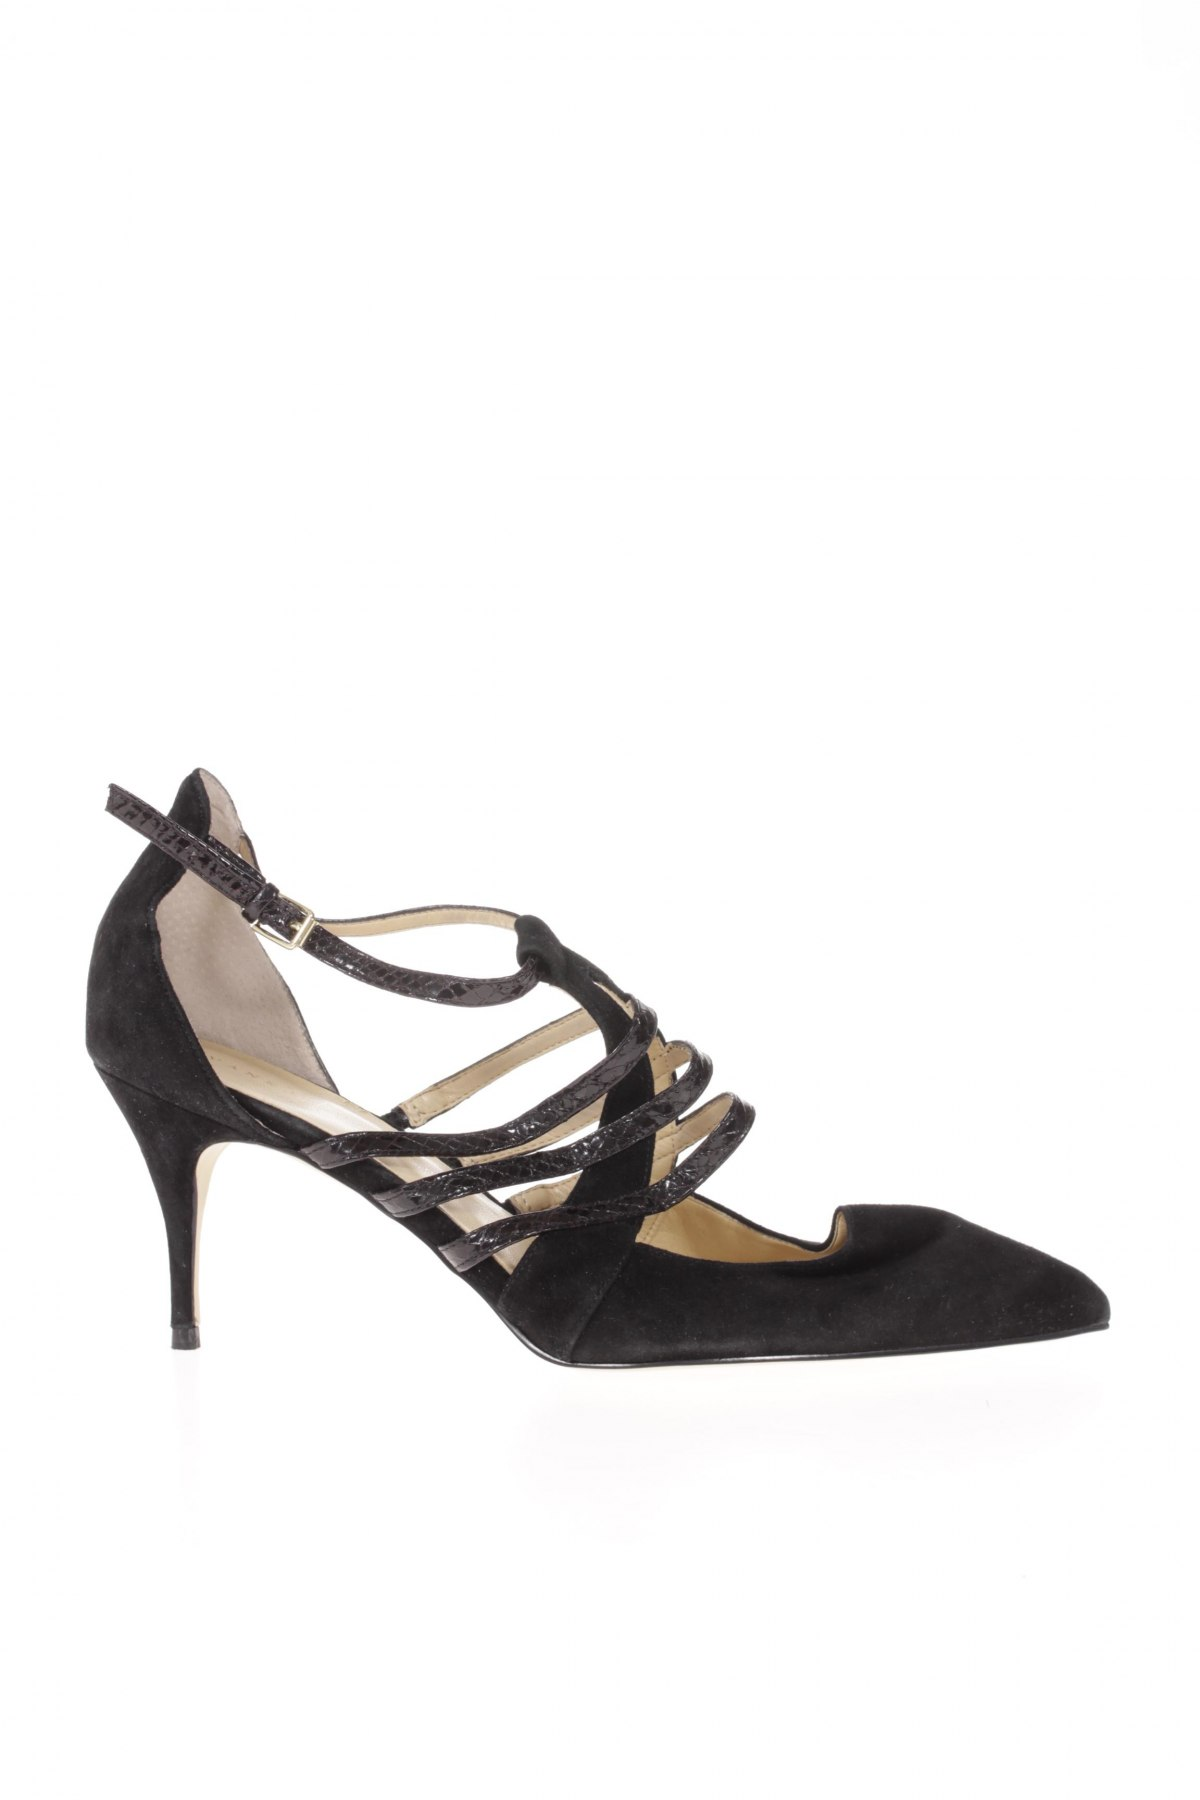 Women's shoes Ivanka Trump